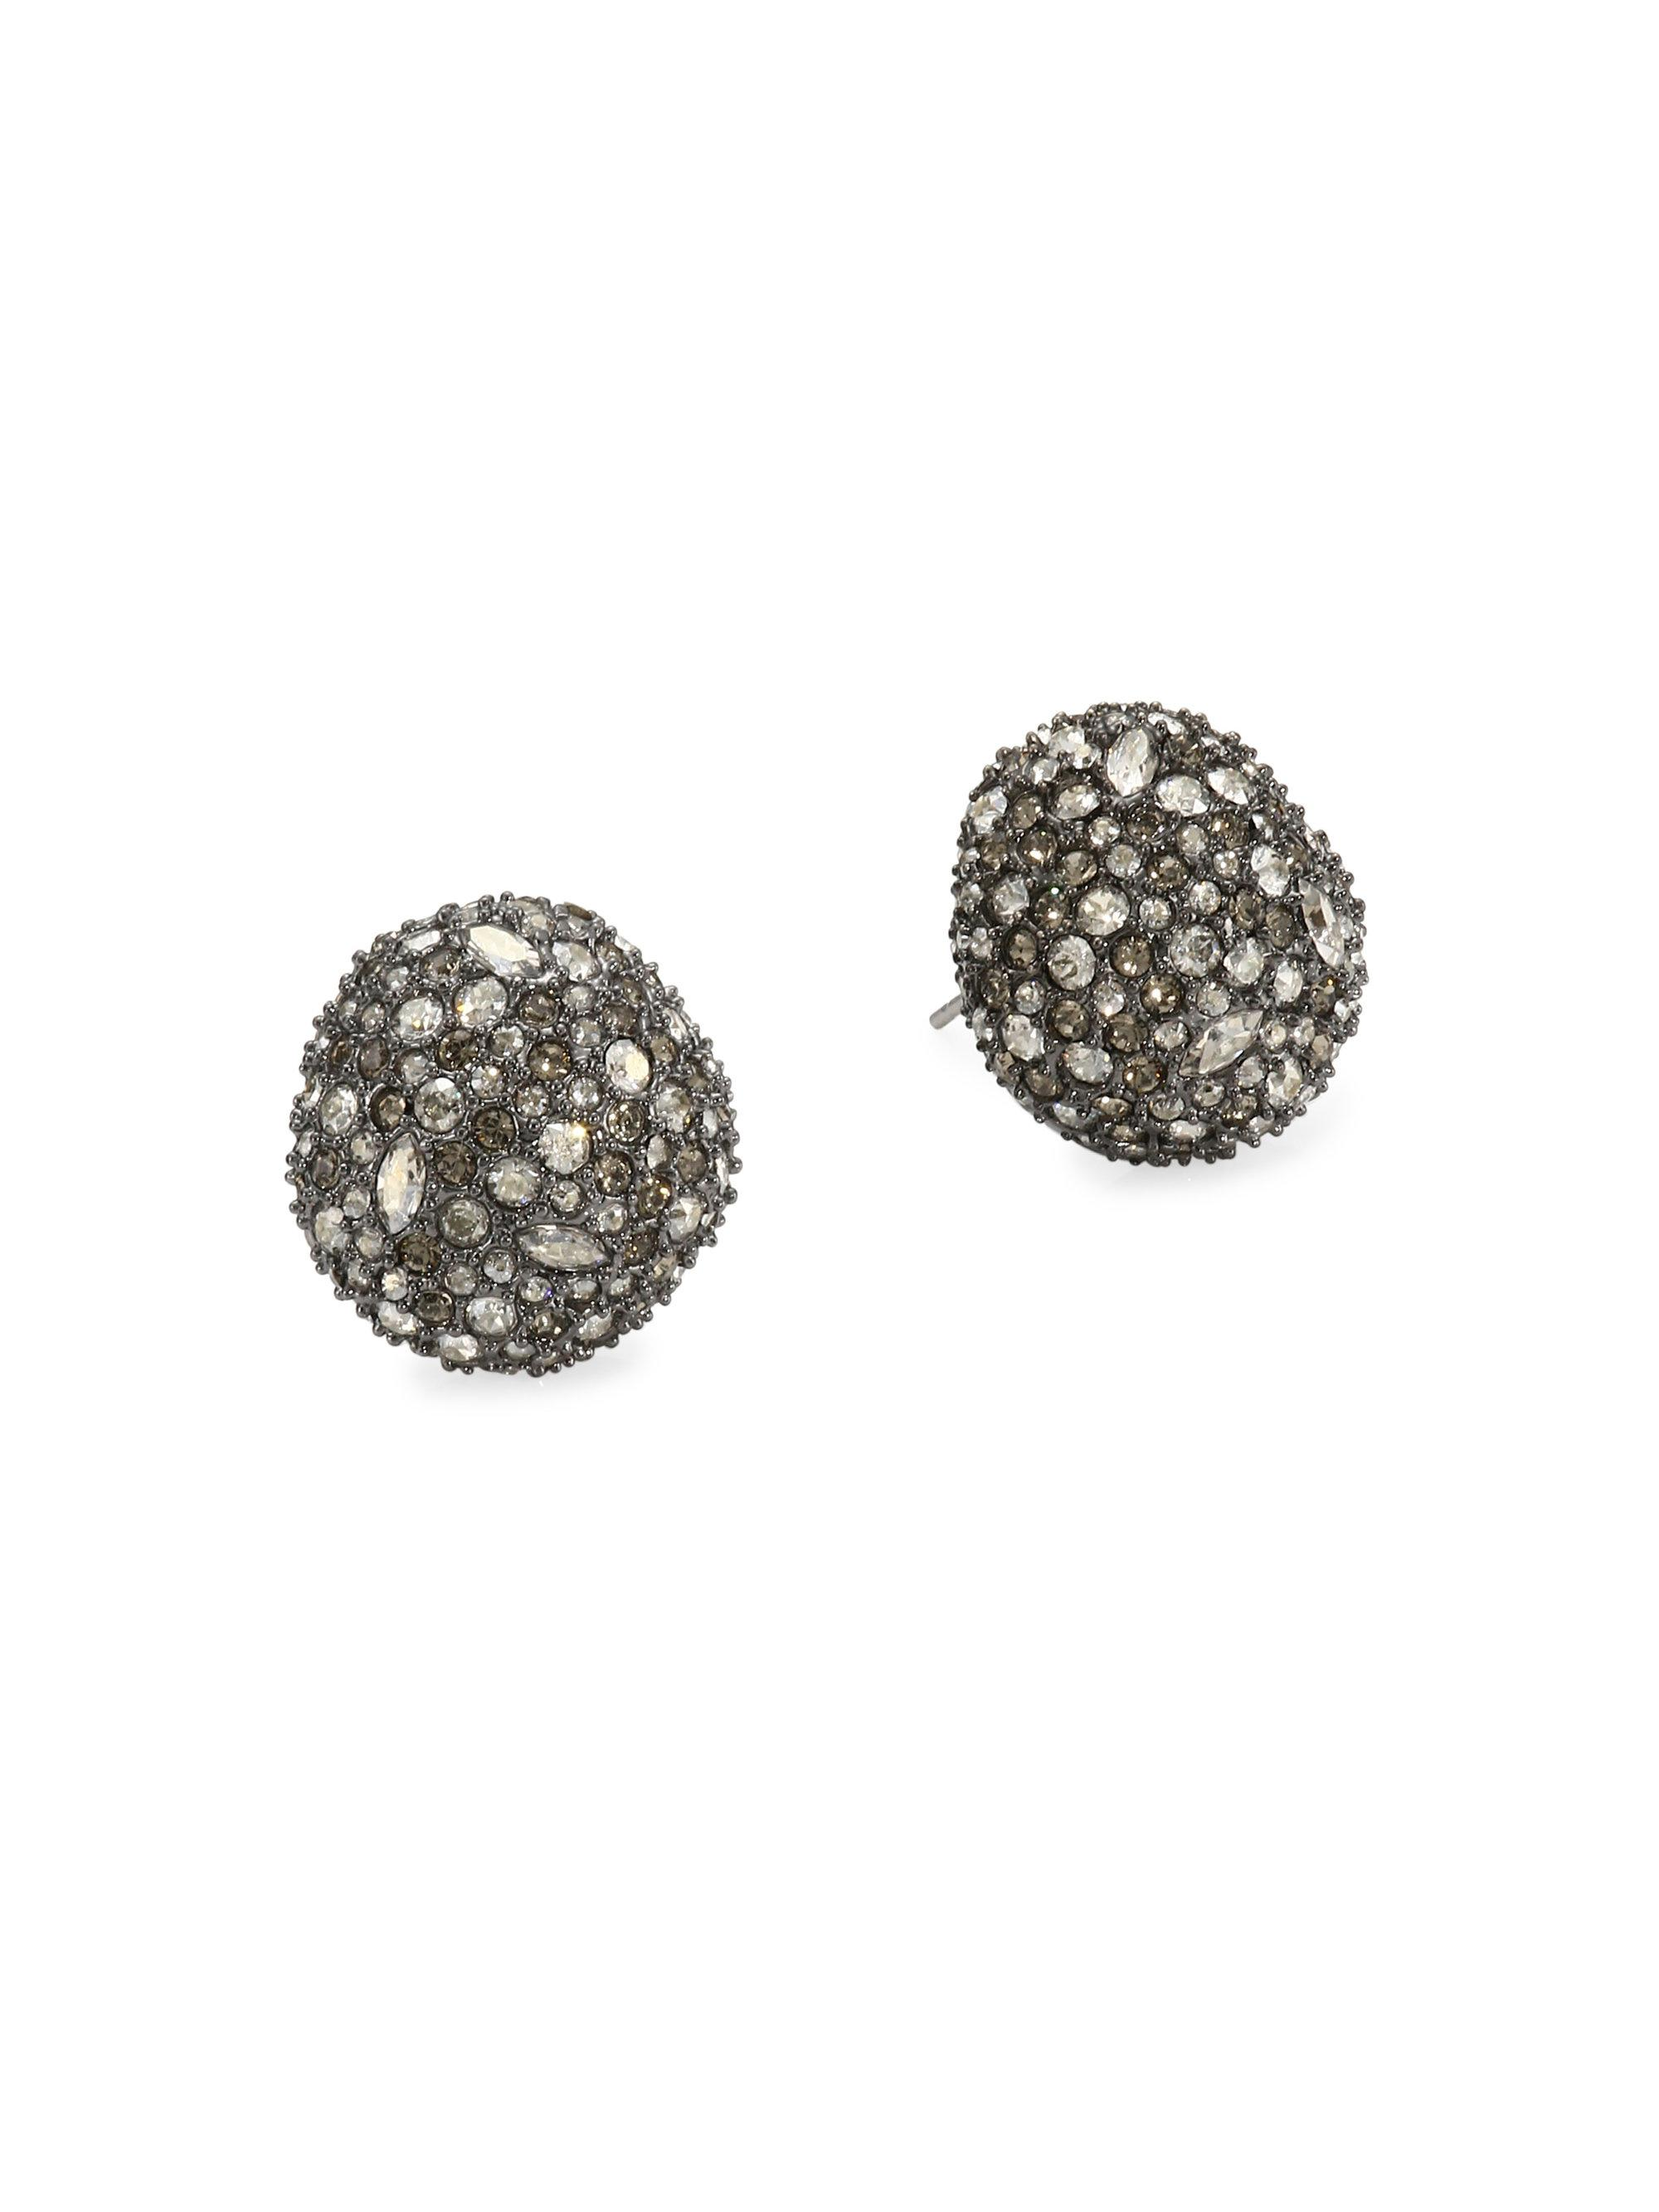 Alexis Bittar Crystal Encrusted Button Stud Earrings maQE7cYnm